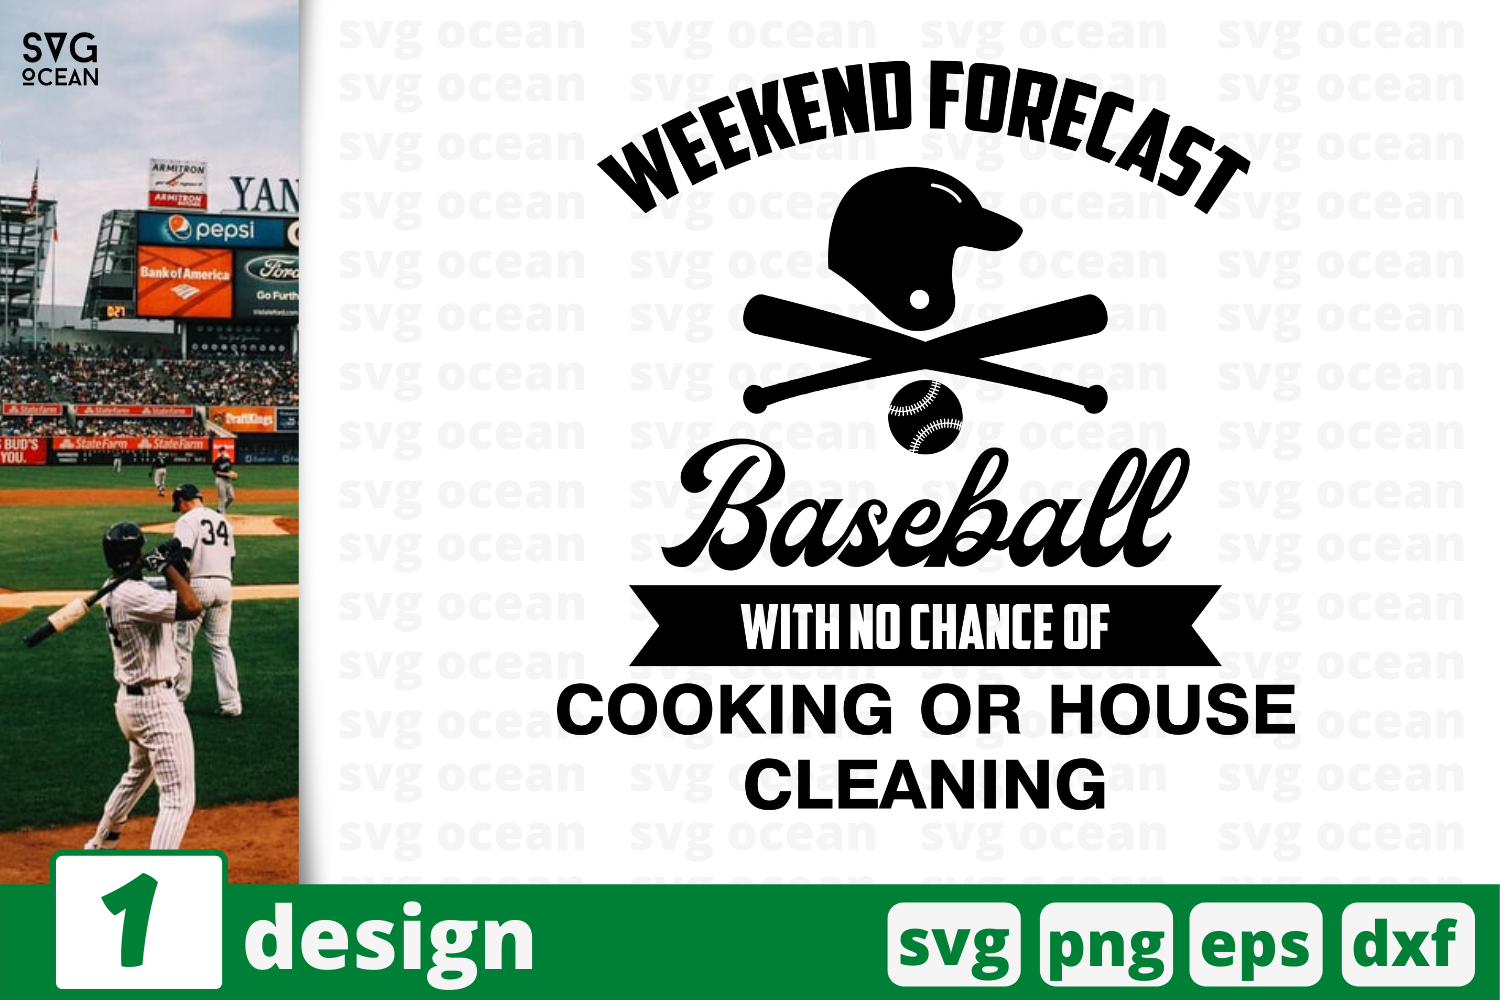 Download Free Weekend Forecast Baseball Graphic By Svgocean Creative Fabrica for Cricut Explore, Silhouette and other cutting machines.